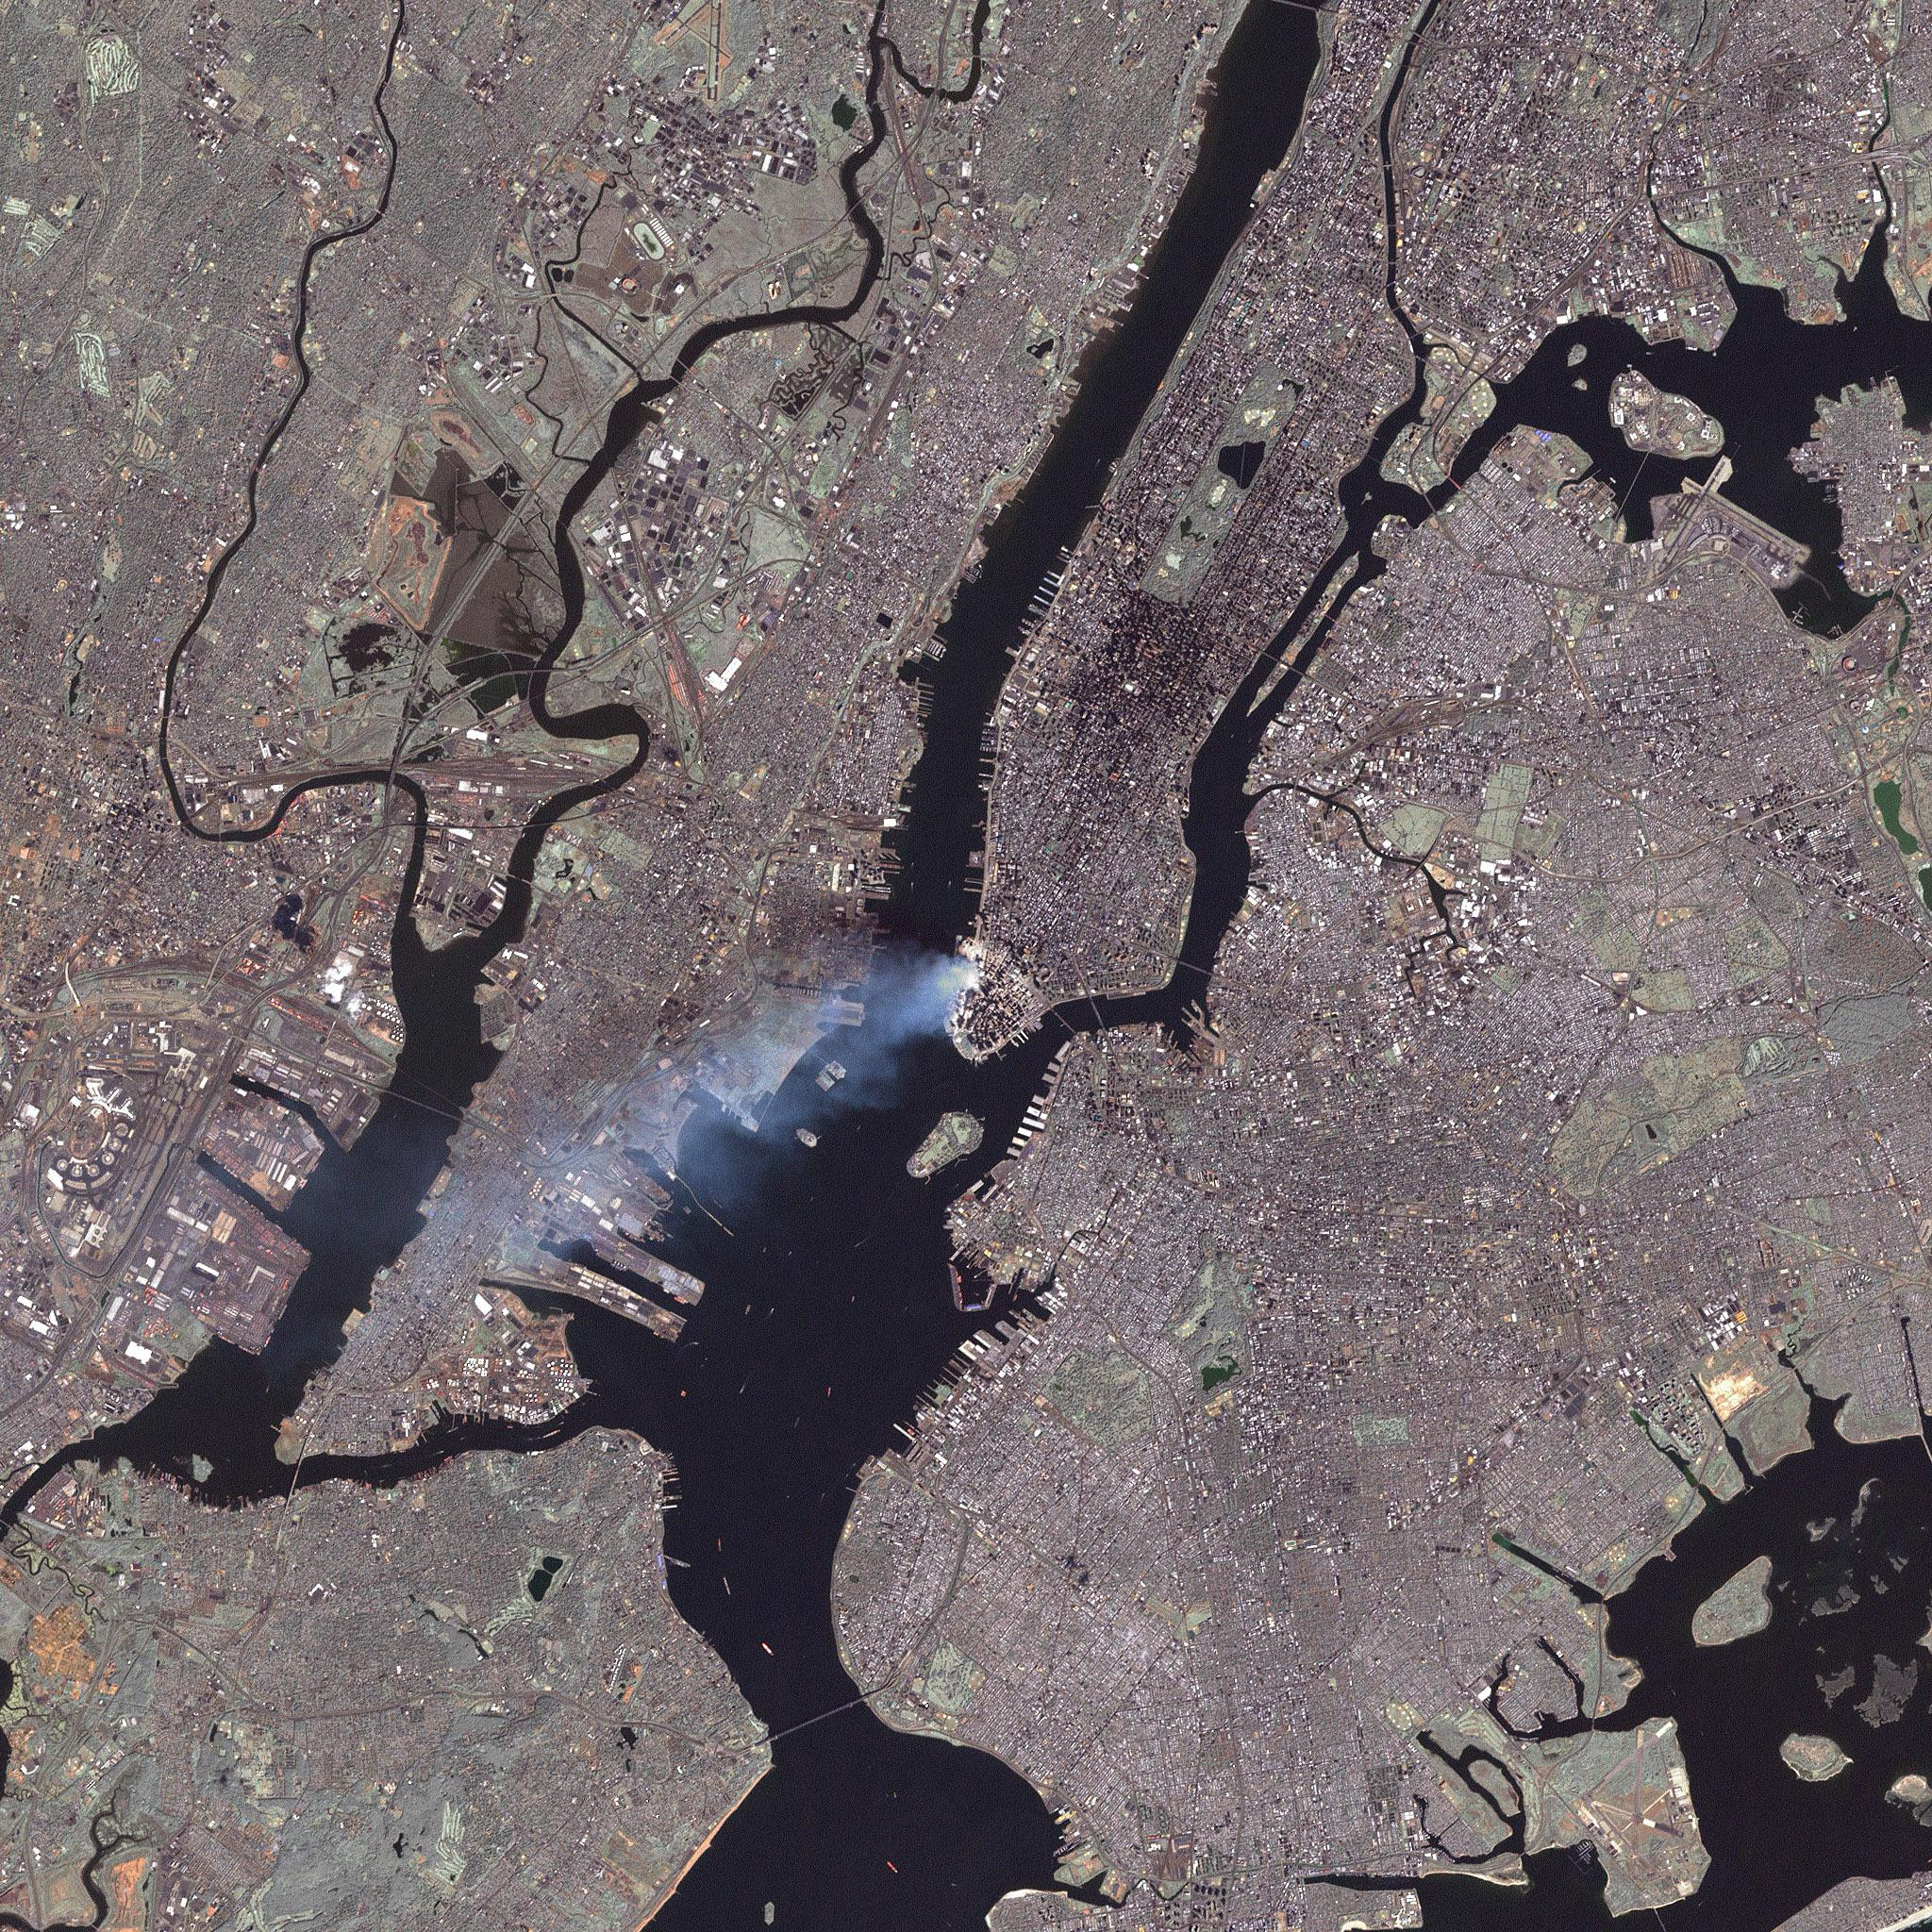 http://www.nasa.gov/sites/default/files/images/583036main_wtc-merge-321pan_lrg_full.jpg